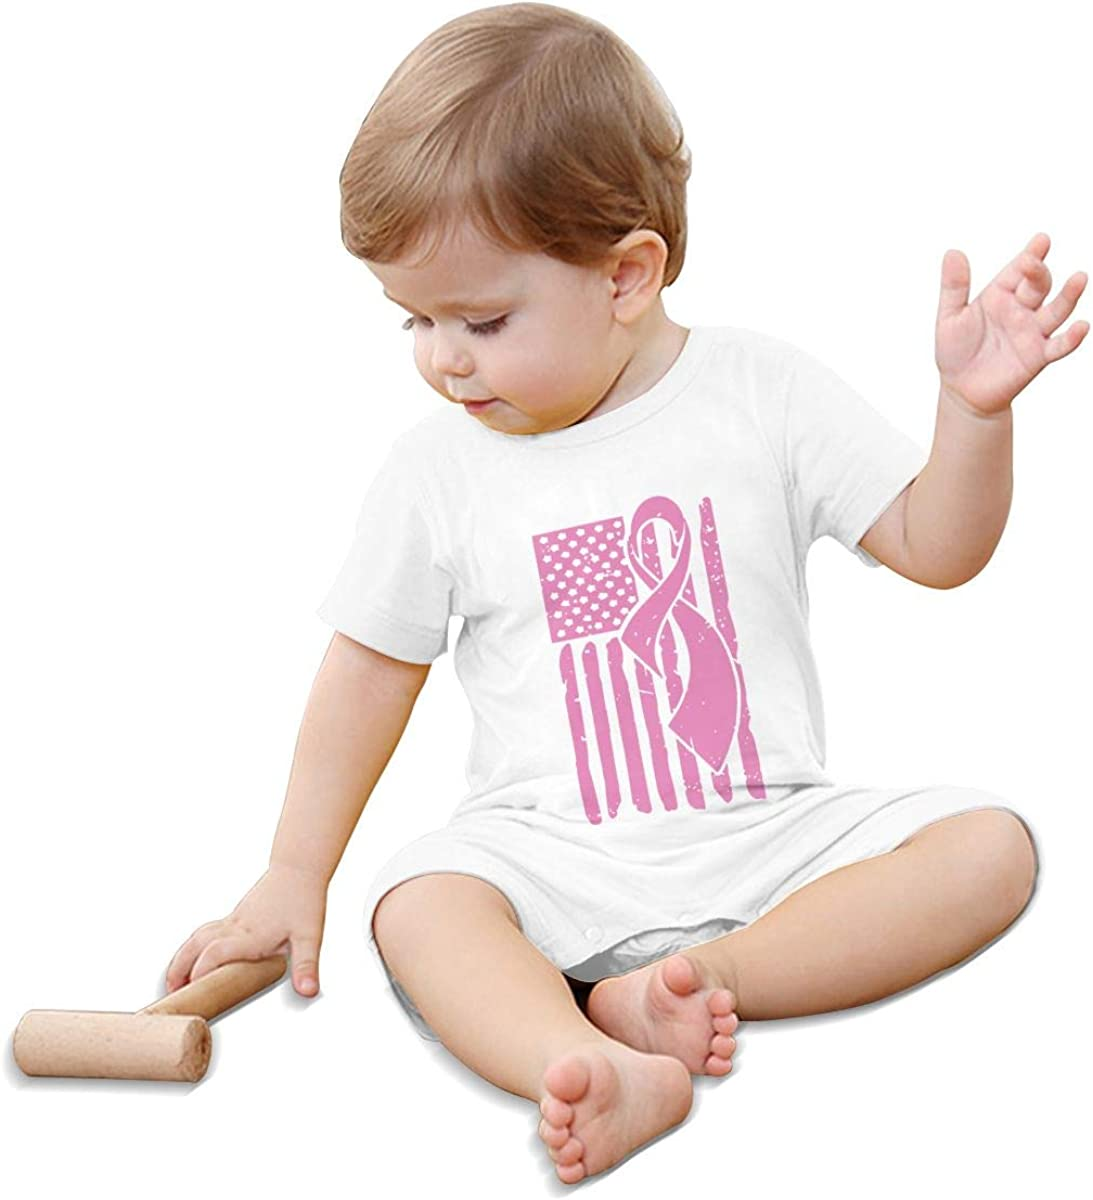 Mri-le1 Baby Boy Coverall Breast Cancer Awareness Ribbon American Flag Toddler Jumpsuit